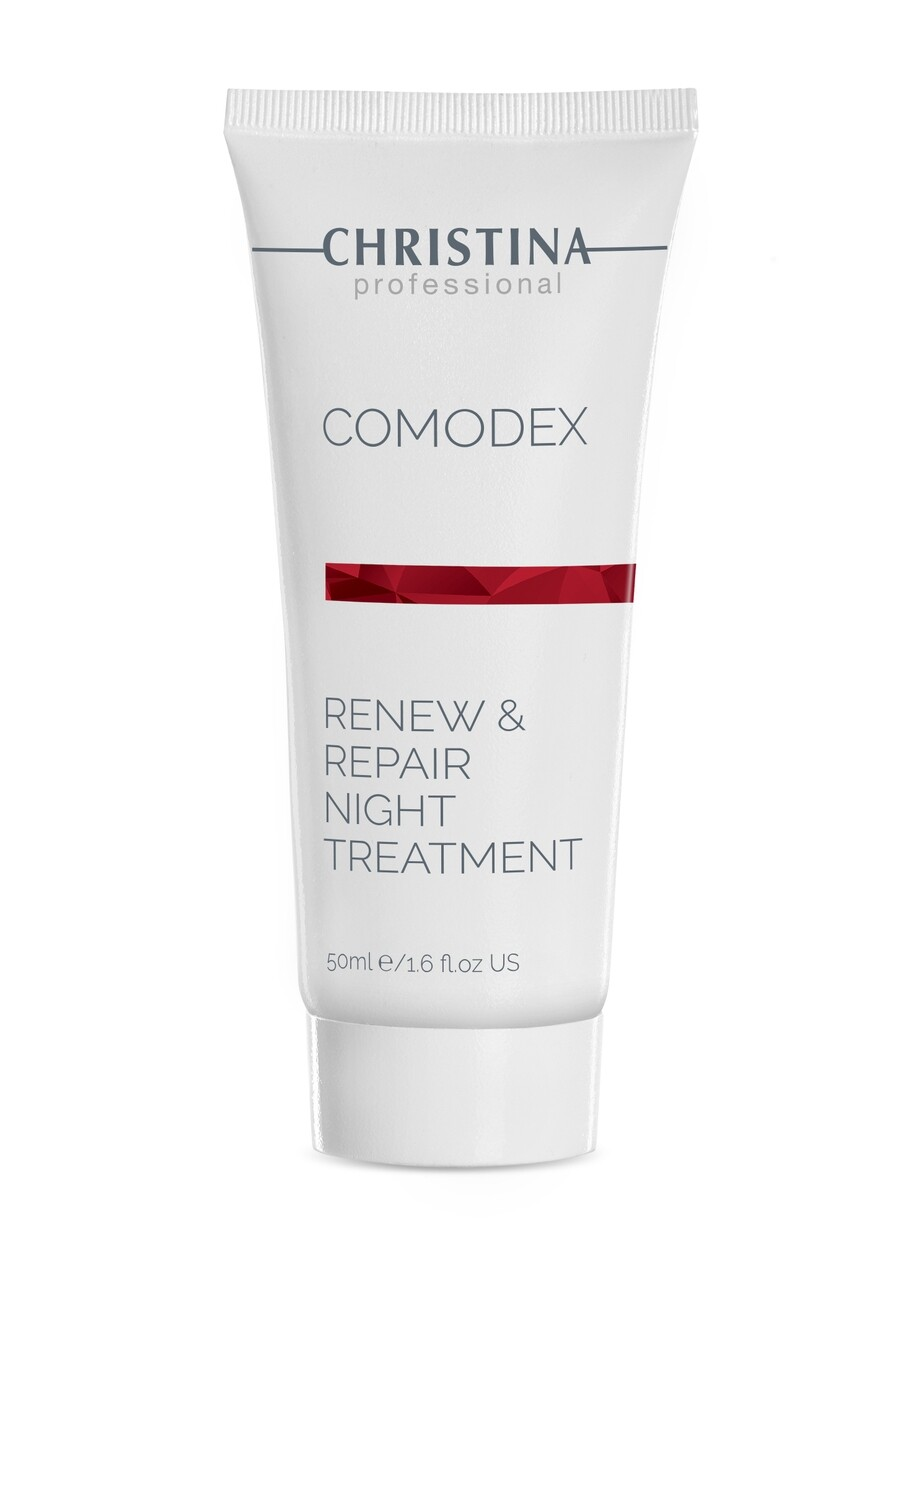 Comodex-Renew&Repair Night treatment 50